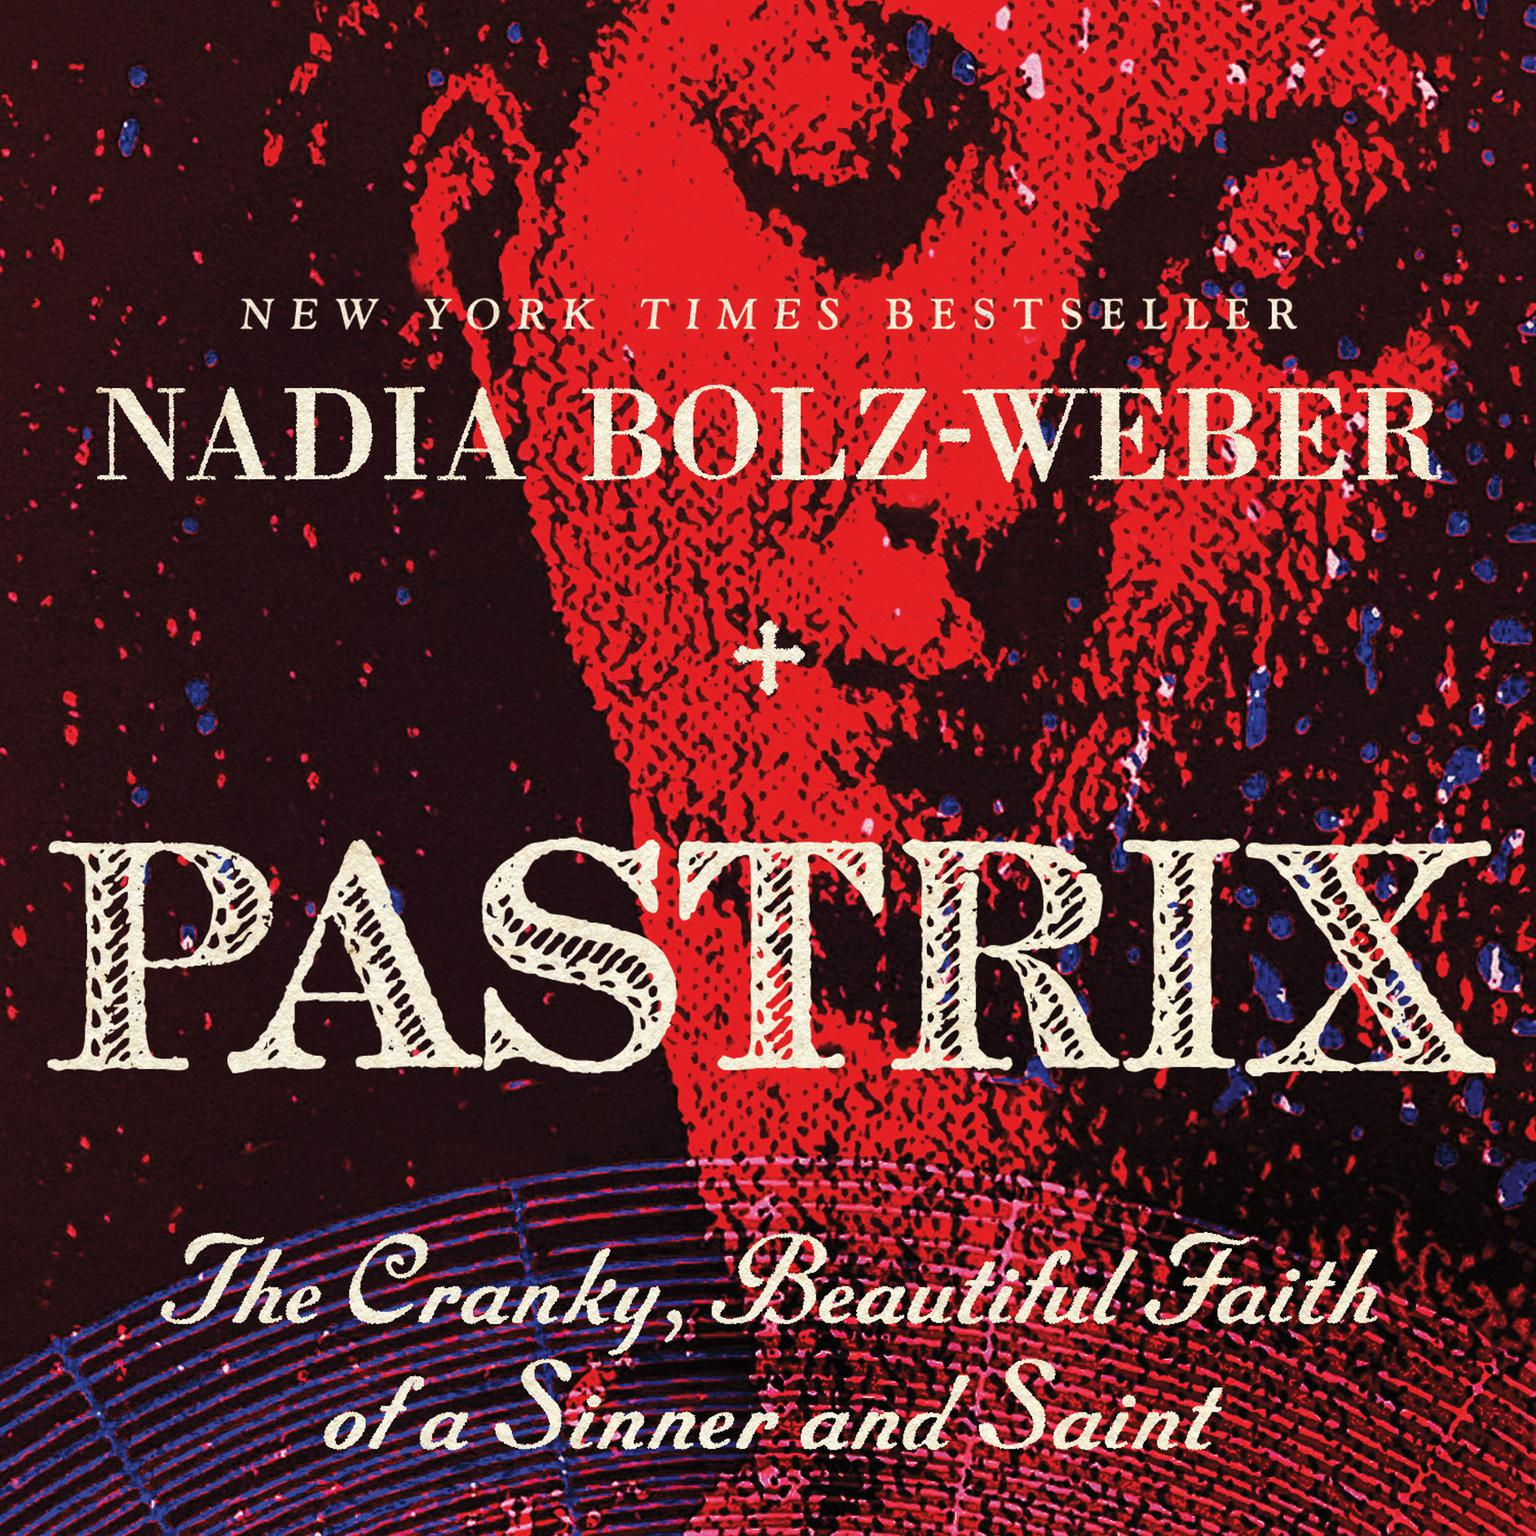 Printable Pastrix: The Cranky, Beautiful Faith of a Sinner & Saint Audiobook Cover Art